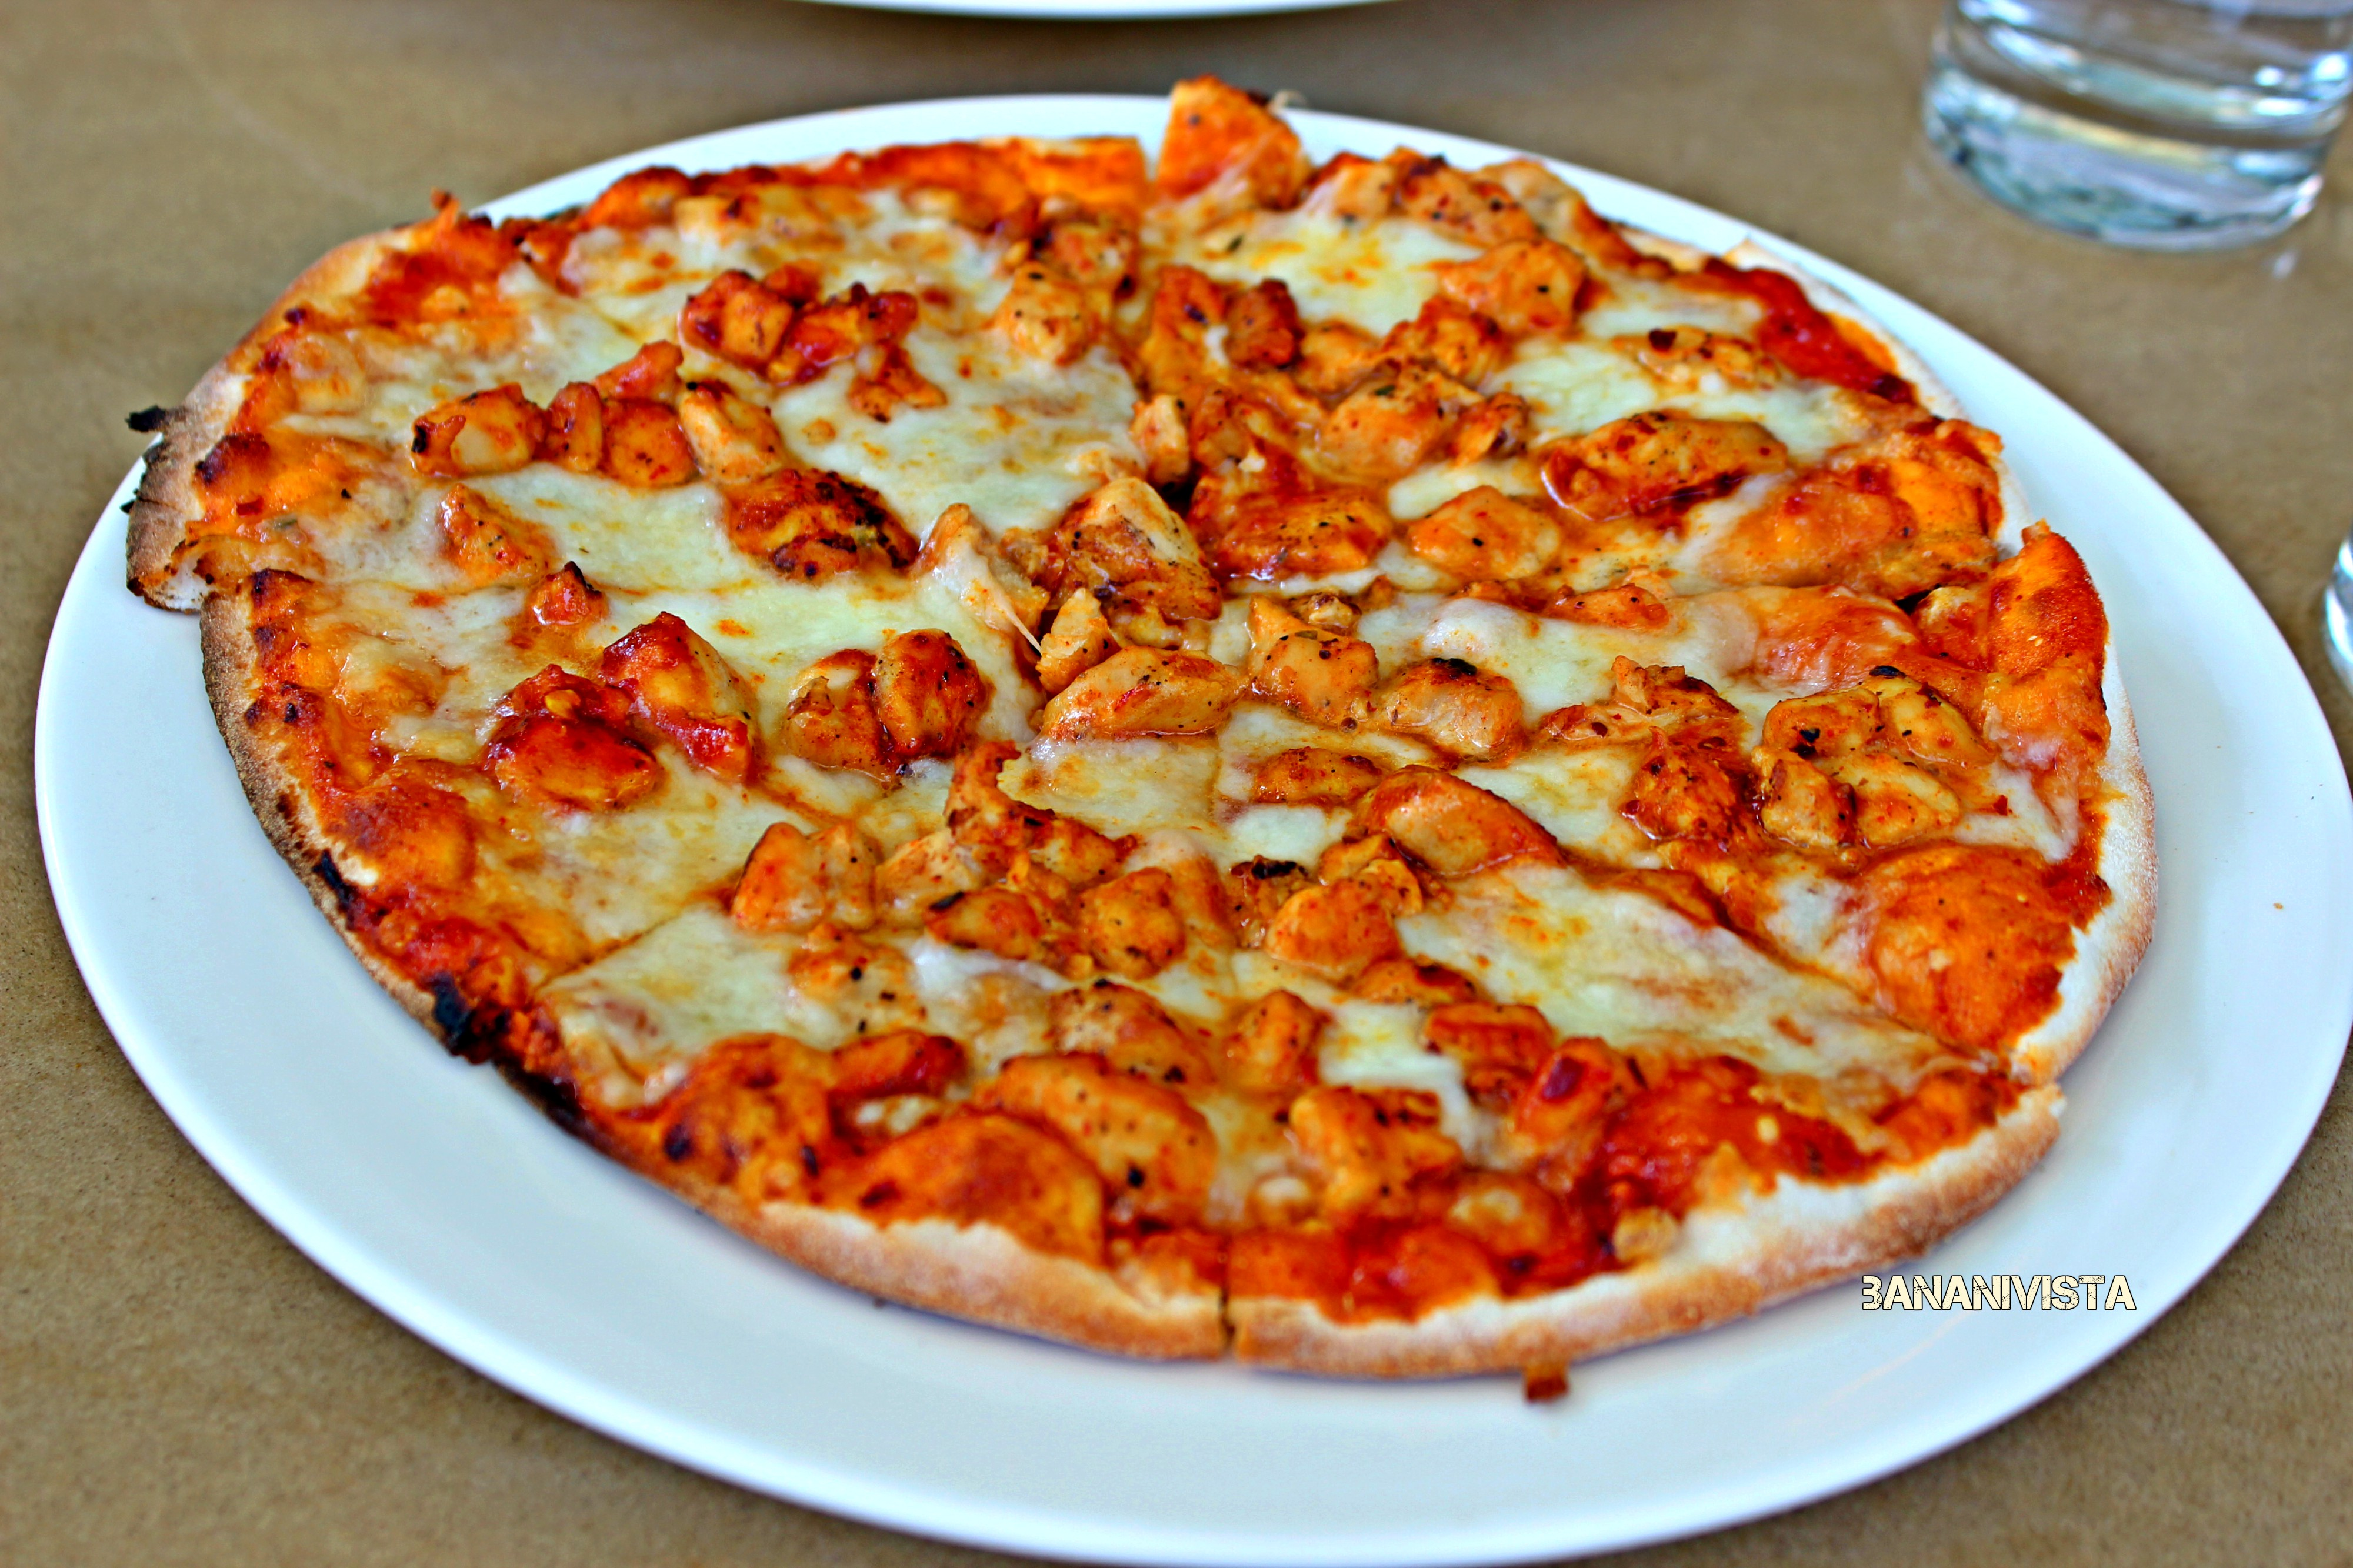 The Barbeque Chicken Pizza